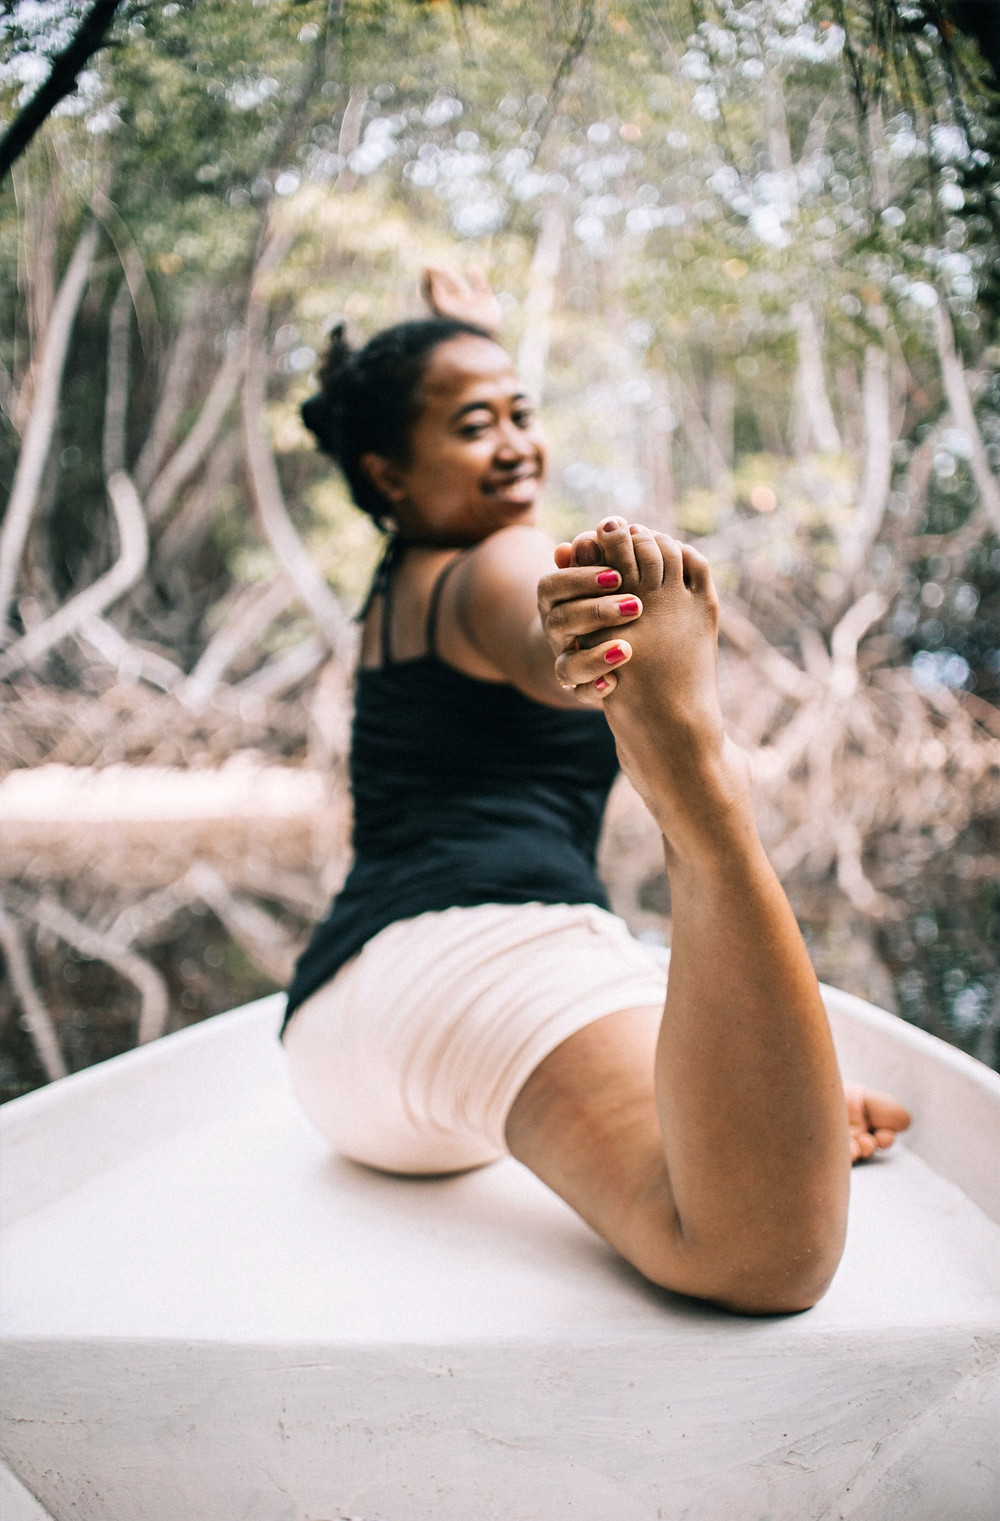 A woman holds a yoga pose while sporting an athleisure outfit and smiling into the camera during a photoshoot.